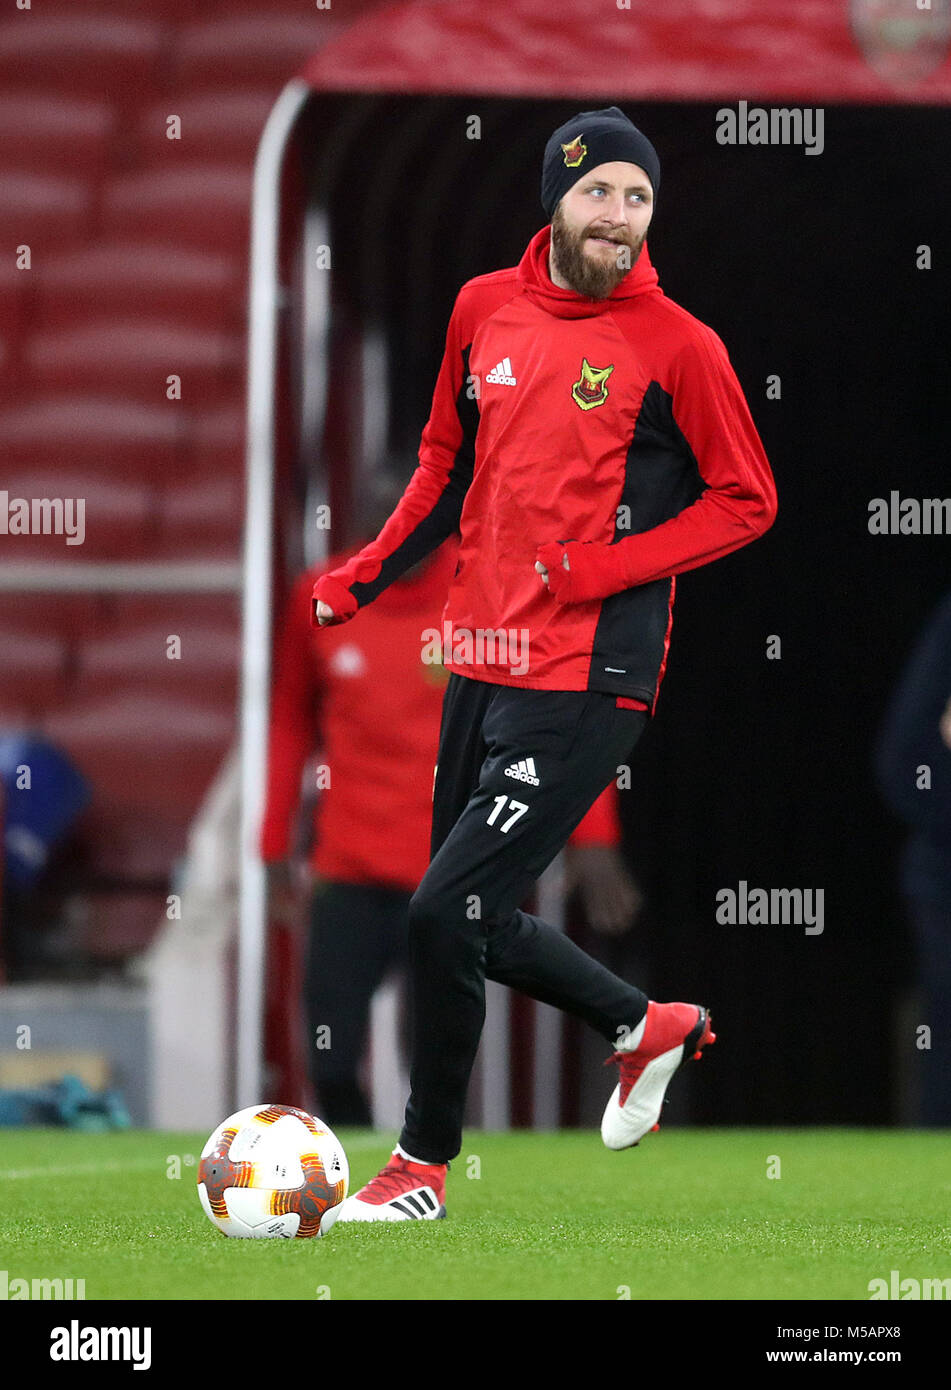 Ostersunds FK's Curtis Edwards during the training session at the Emirates Stadium, London. Stock Photo